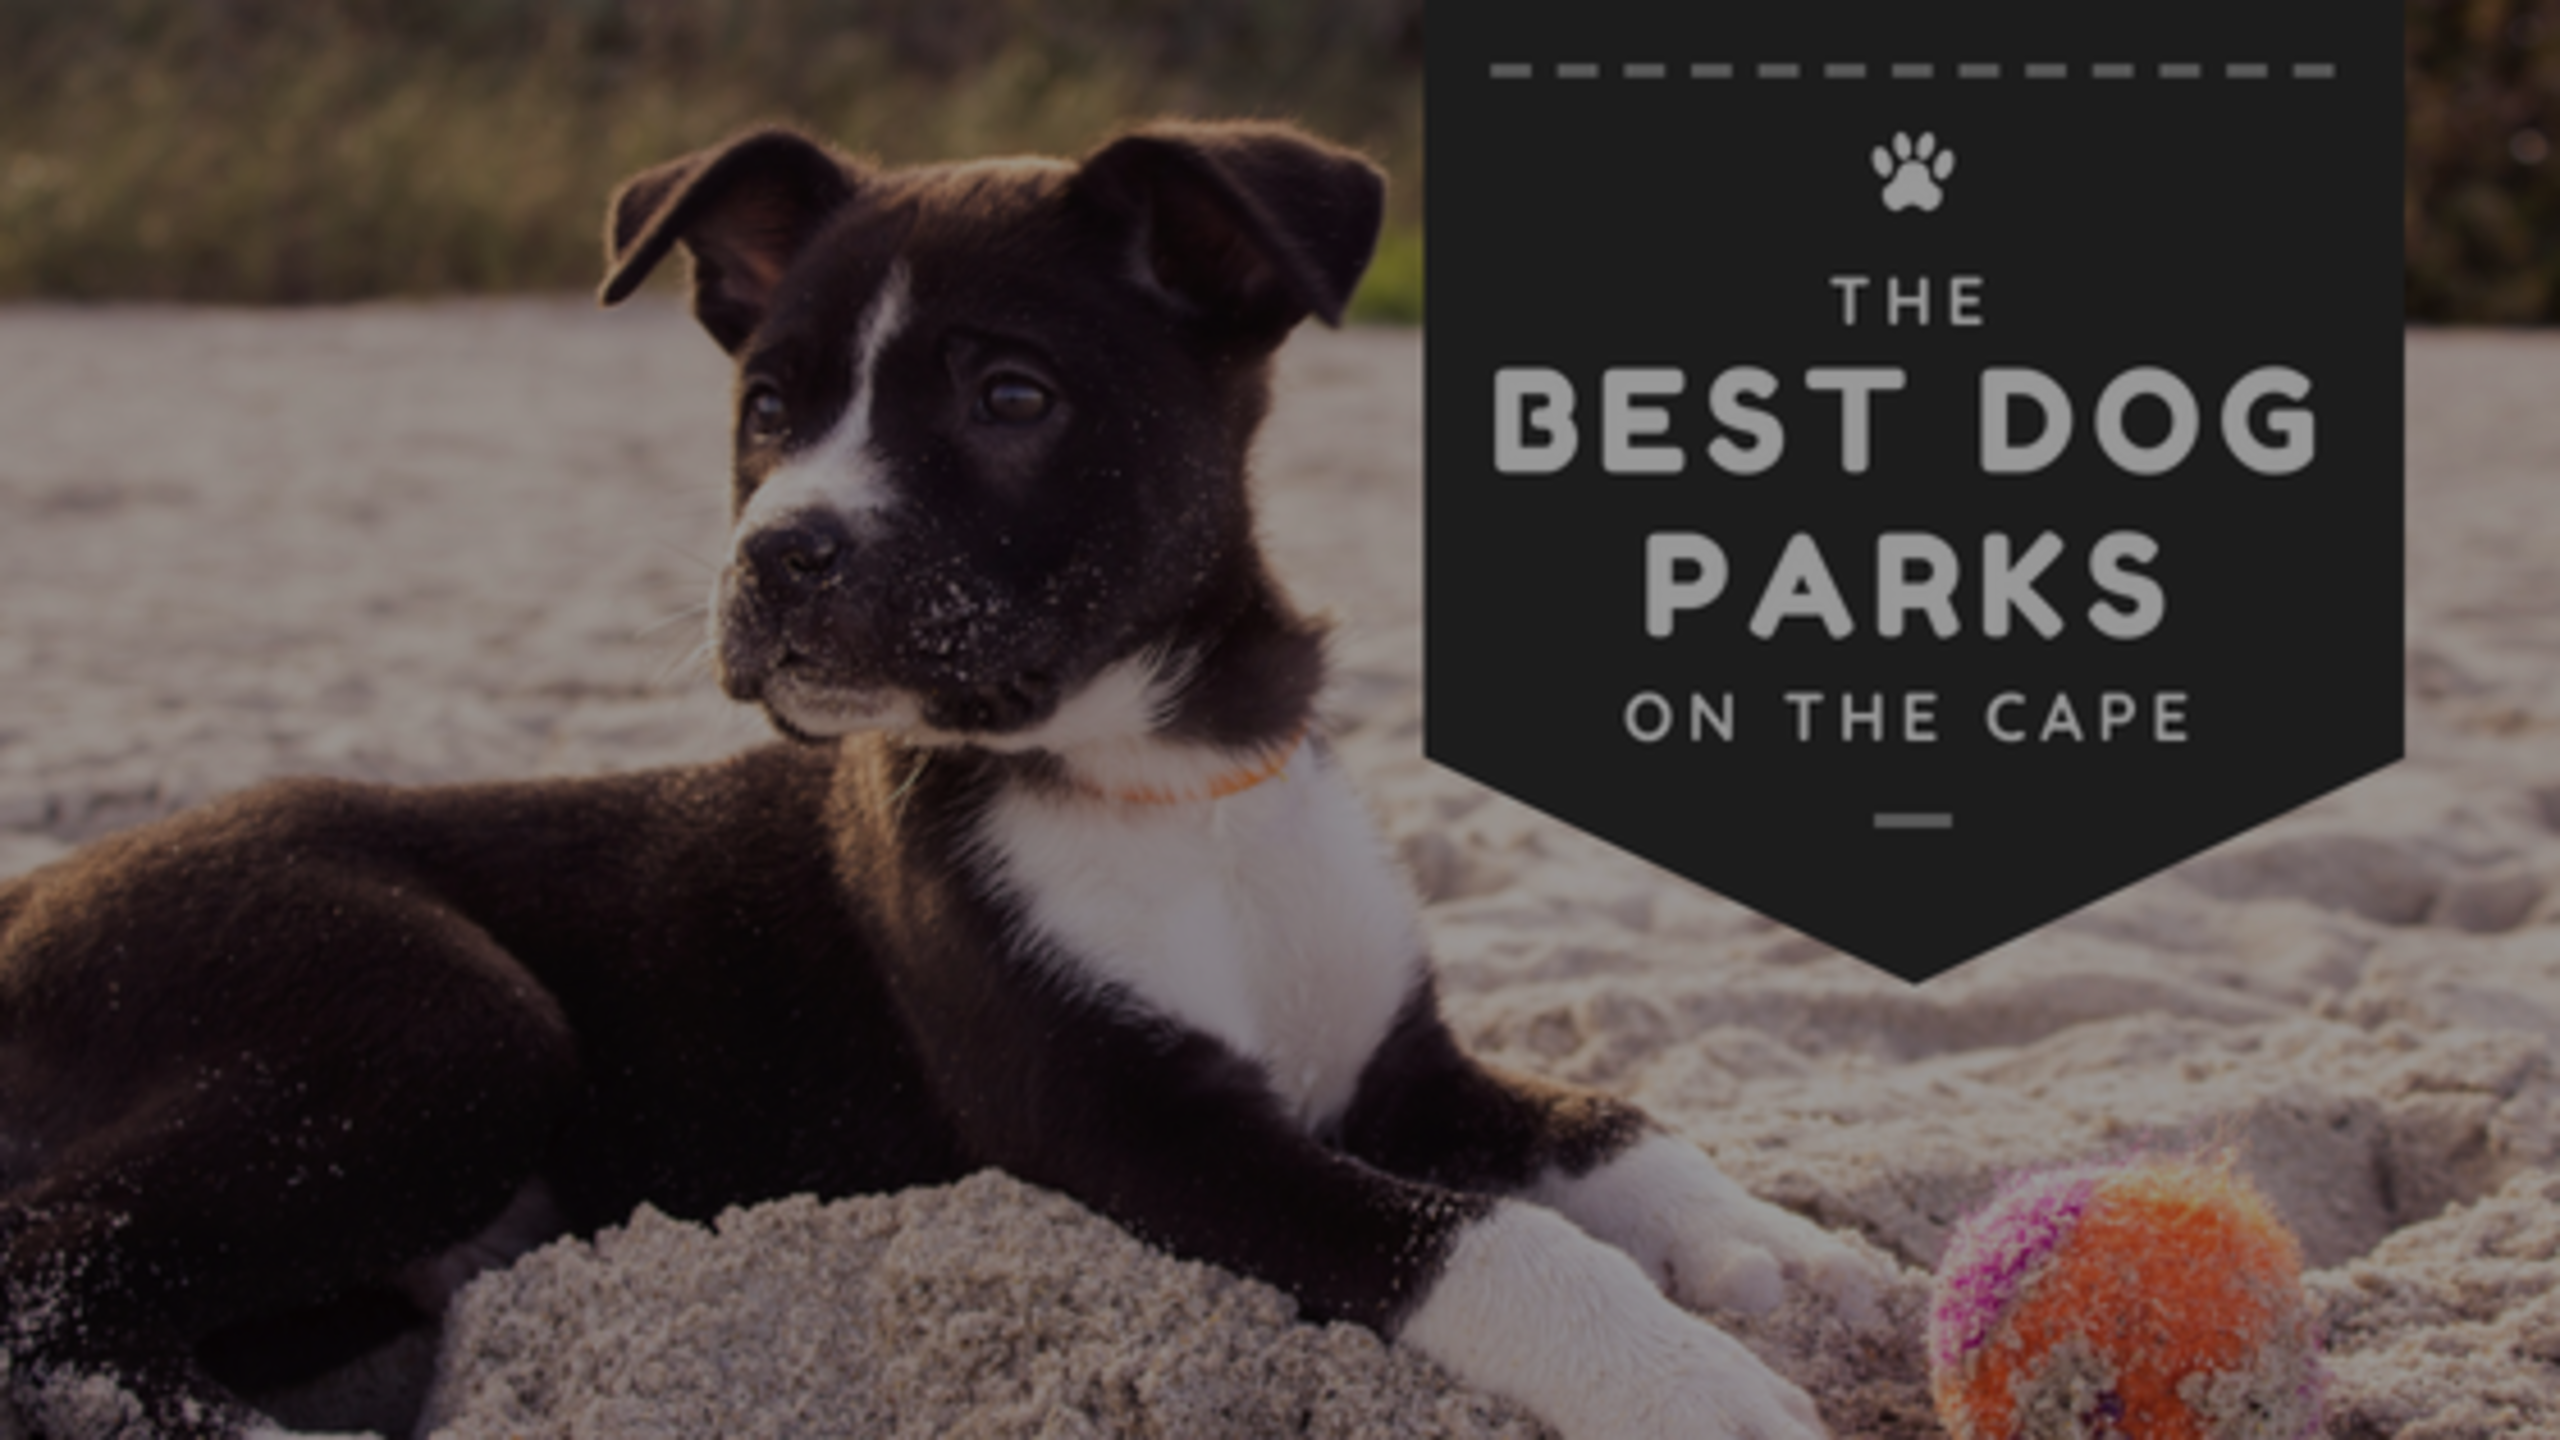 Best Dog Parks on the Cape 2018